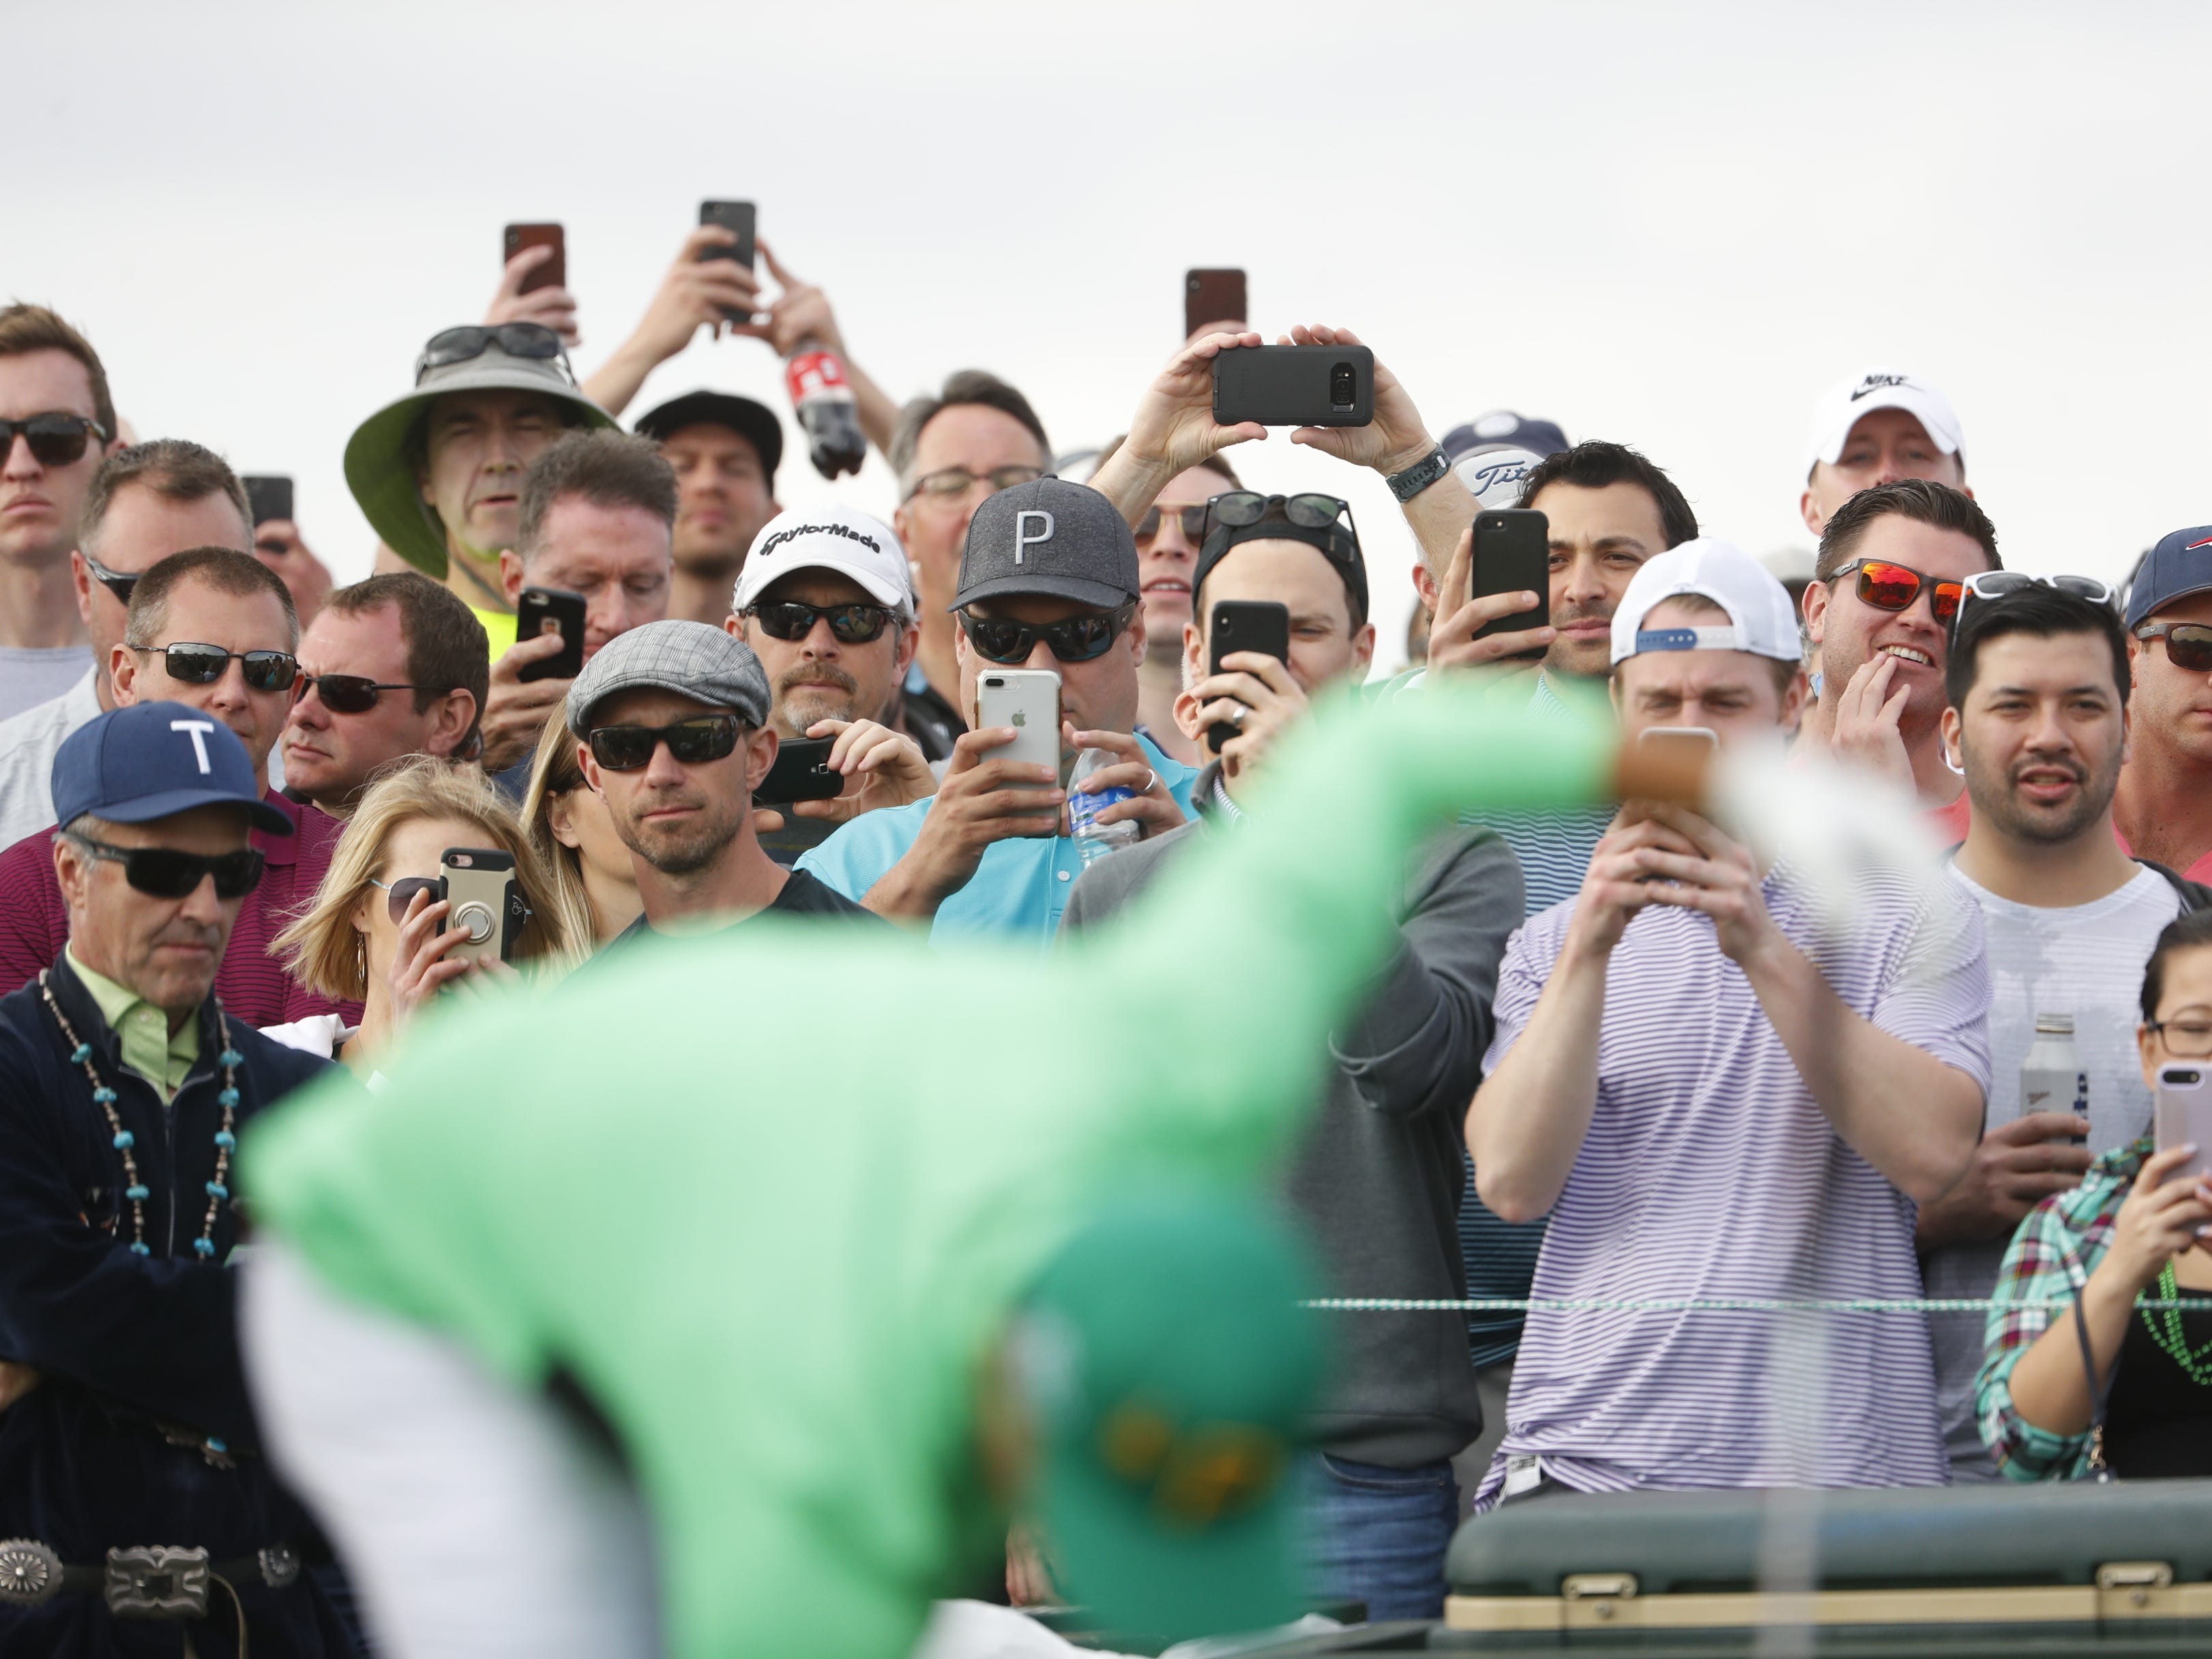 Fans take out their phones to video Rickie Fowler's tee shot on the 15th hole during the third round of the Waste Management Phoenix Open at TPC Scottsdale in Scottsdale, Ariz. on February 2, 2019.